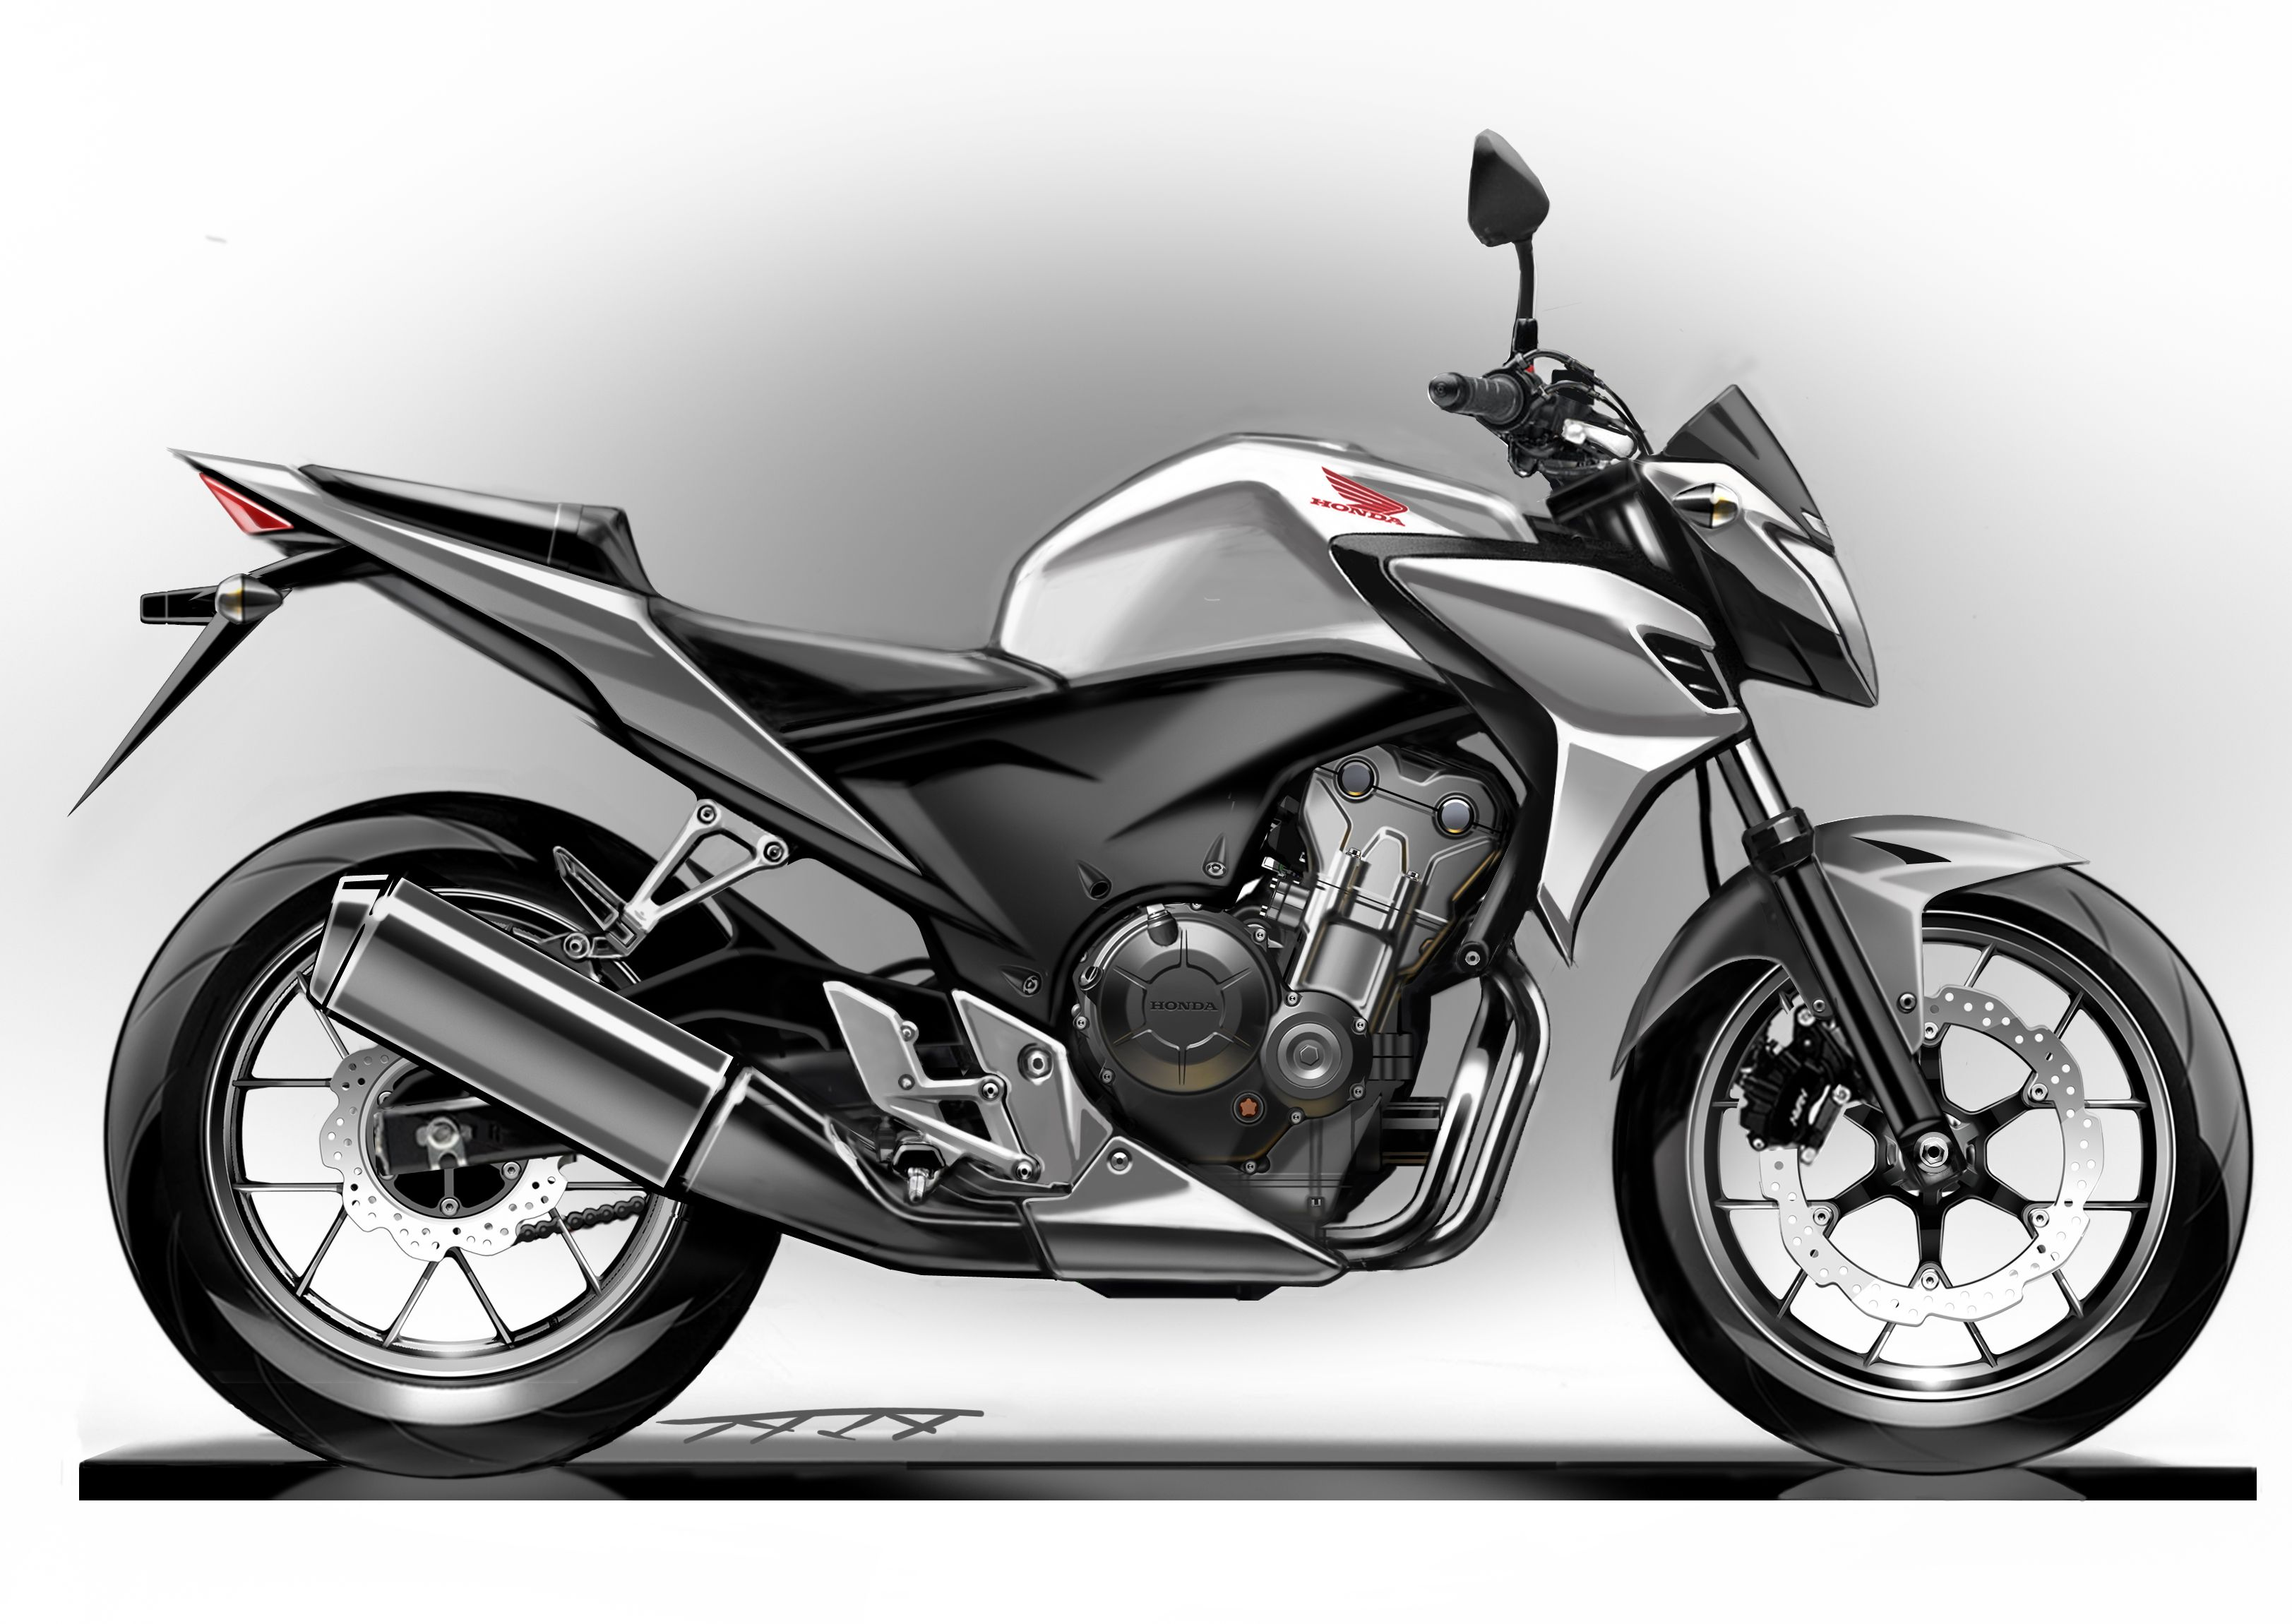 CB500F_FinalSketch_SIDE.jpg (3246×2300) | Sketch | Pinterest ...